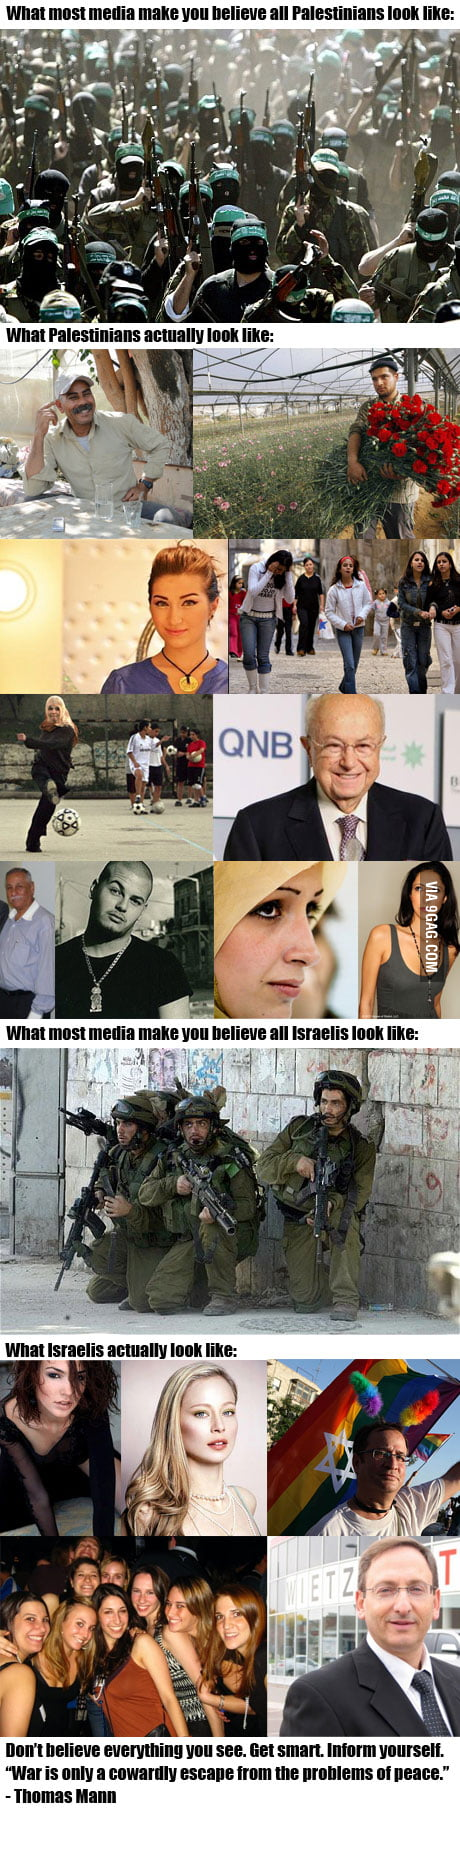 How the media show us Palestinians and Israelis